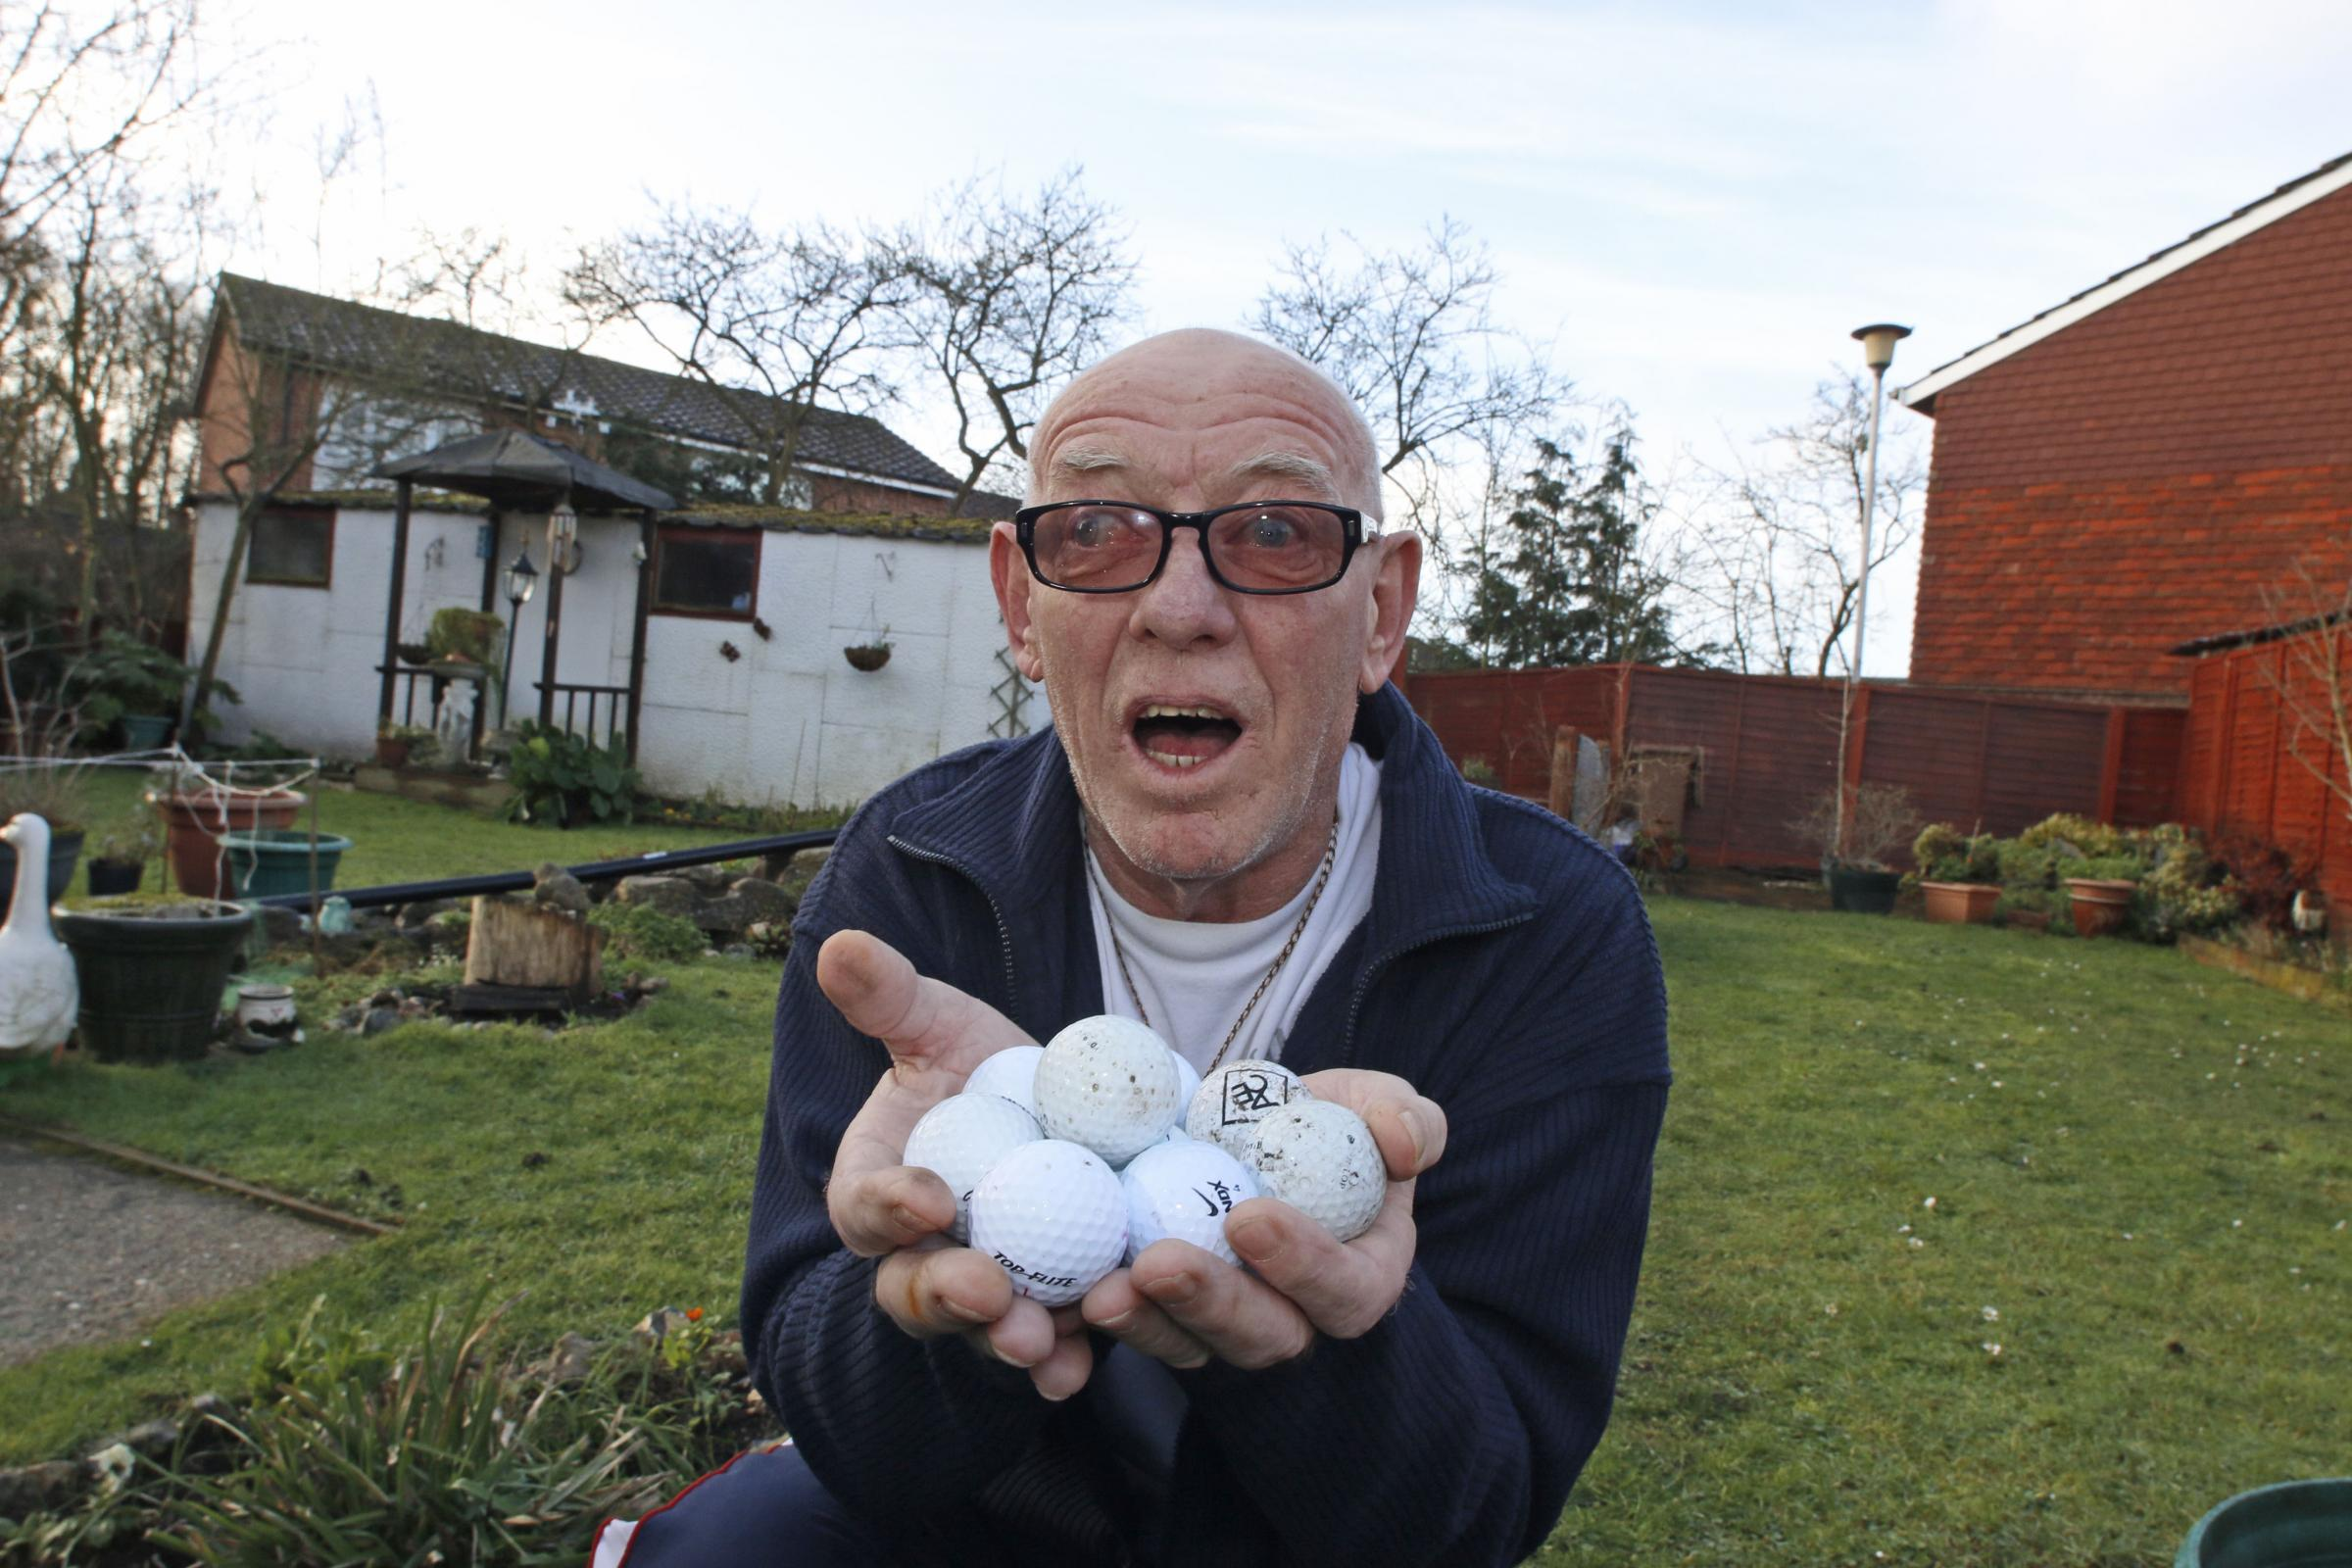 Graham Trodd has found nine golf balls in his garden this month